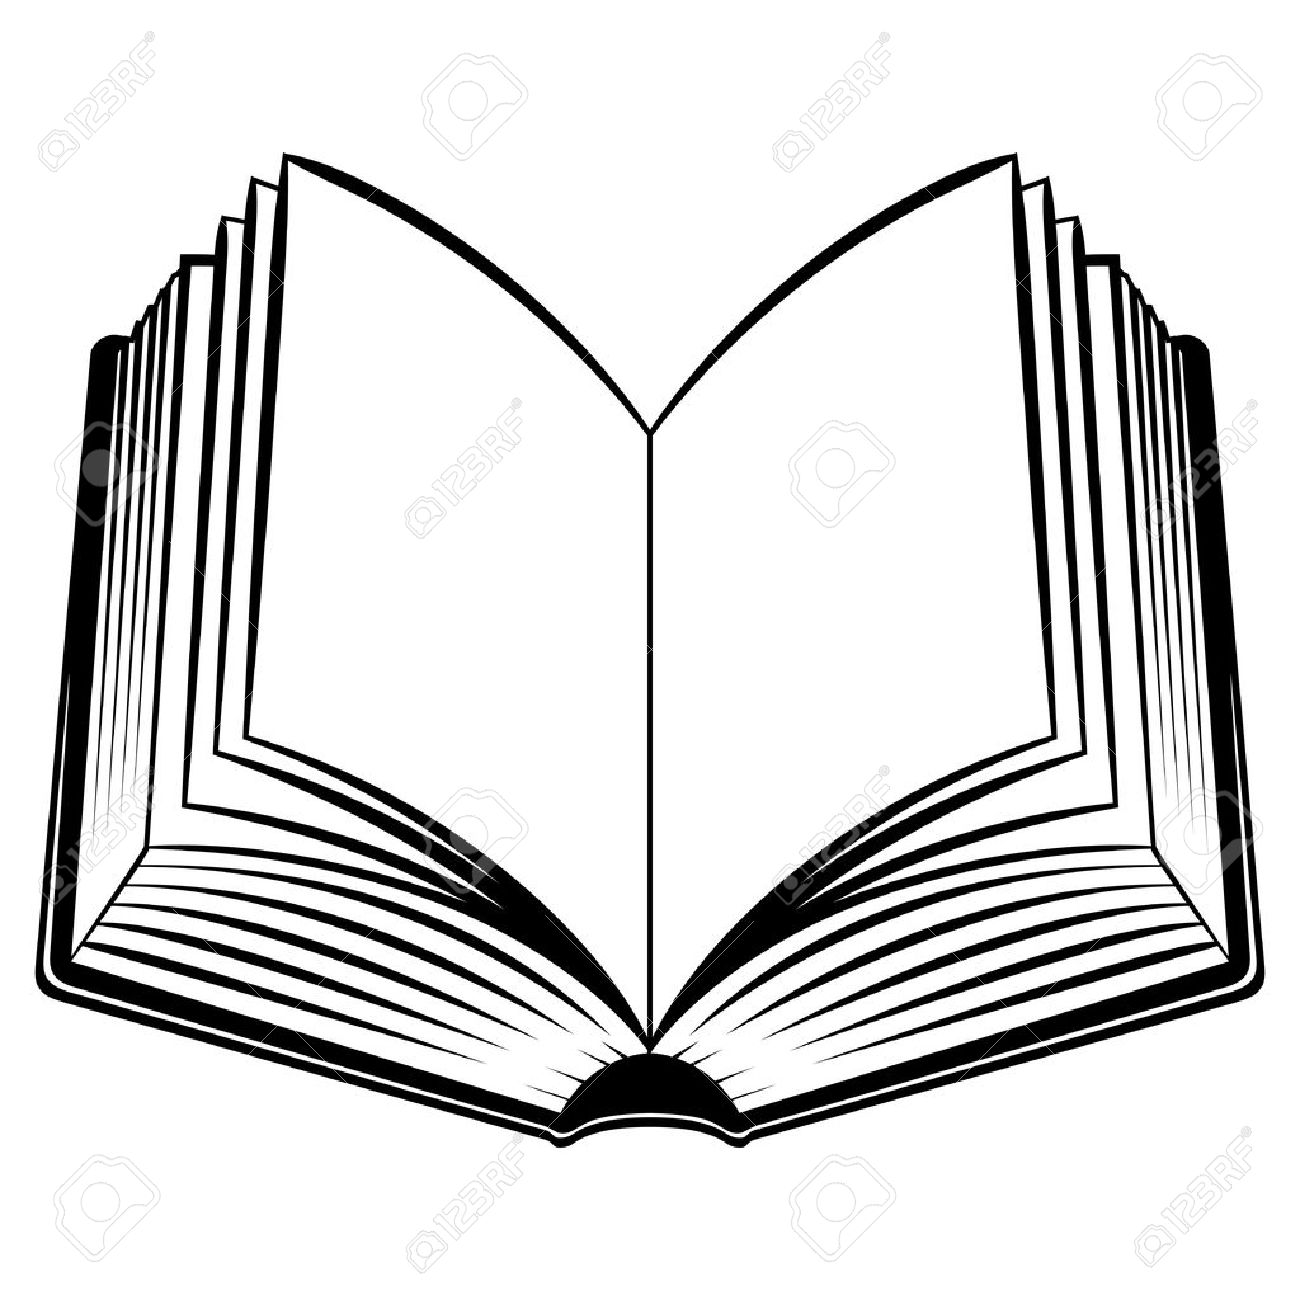 1300x1300 Open Book. Black And White Illustration For Design Royalty Free